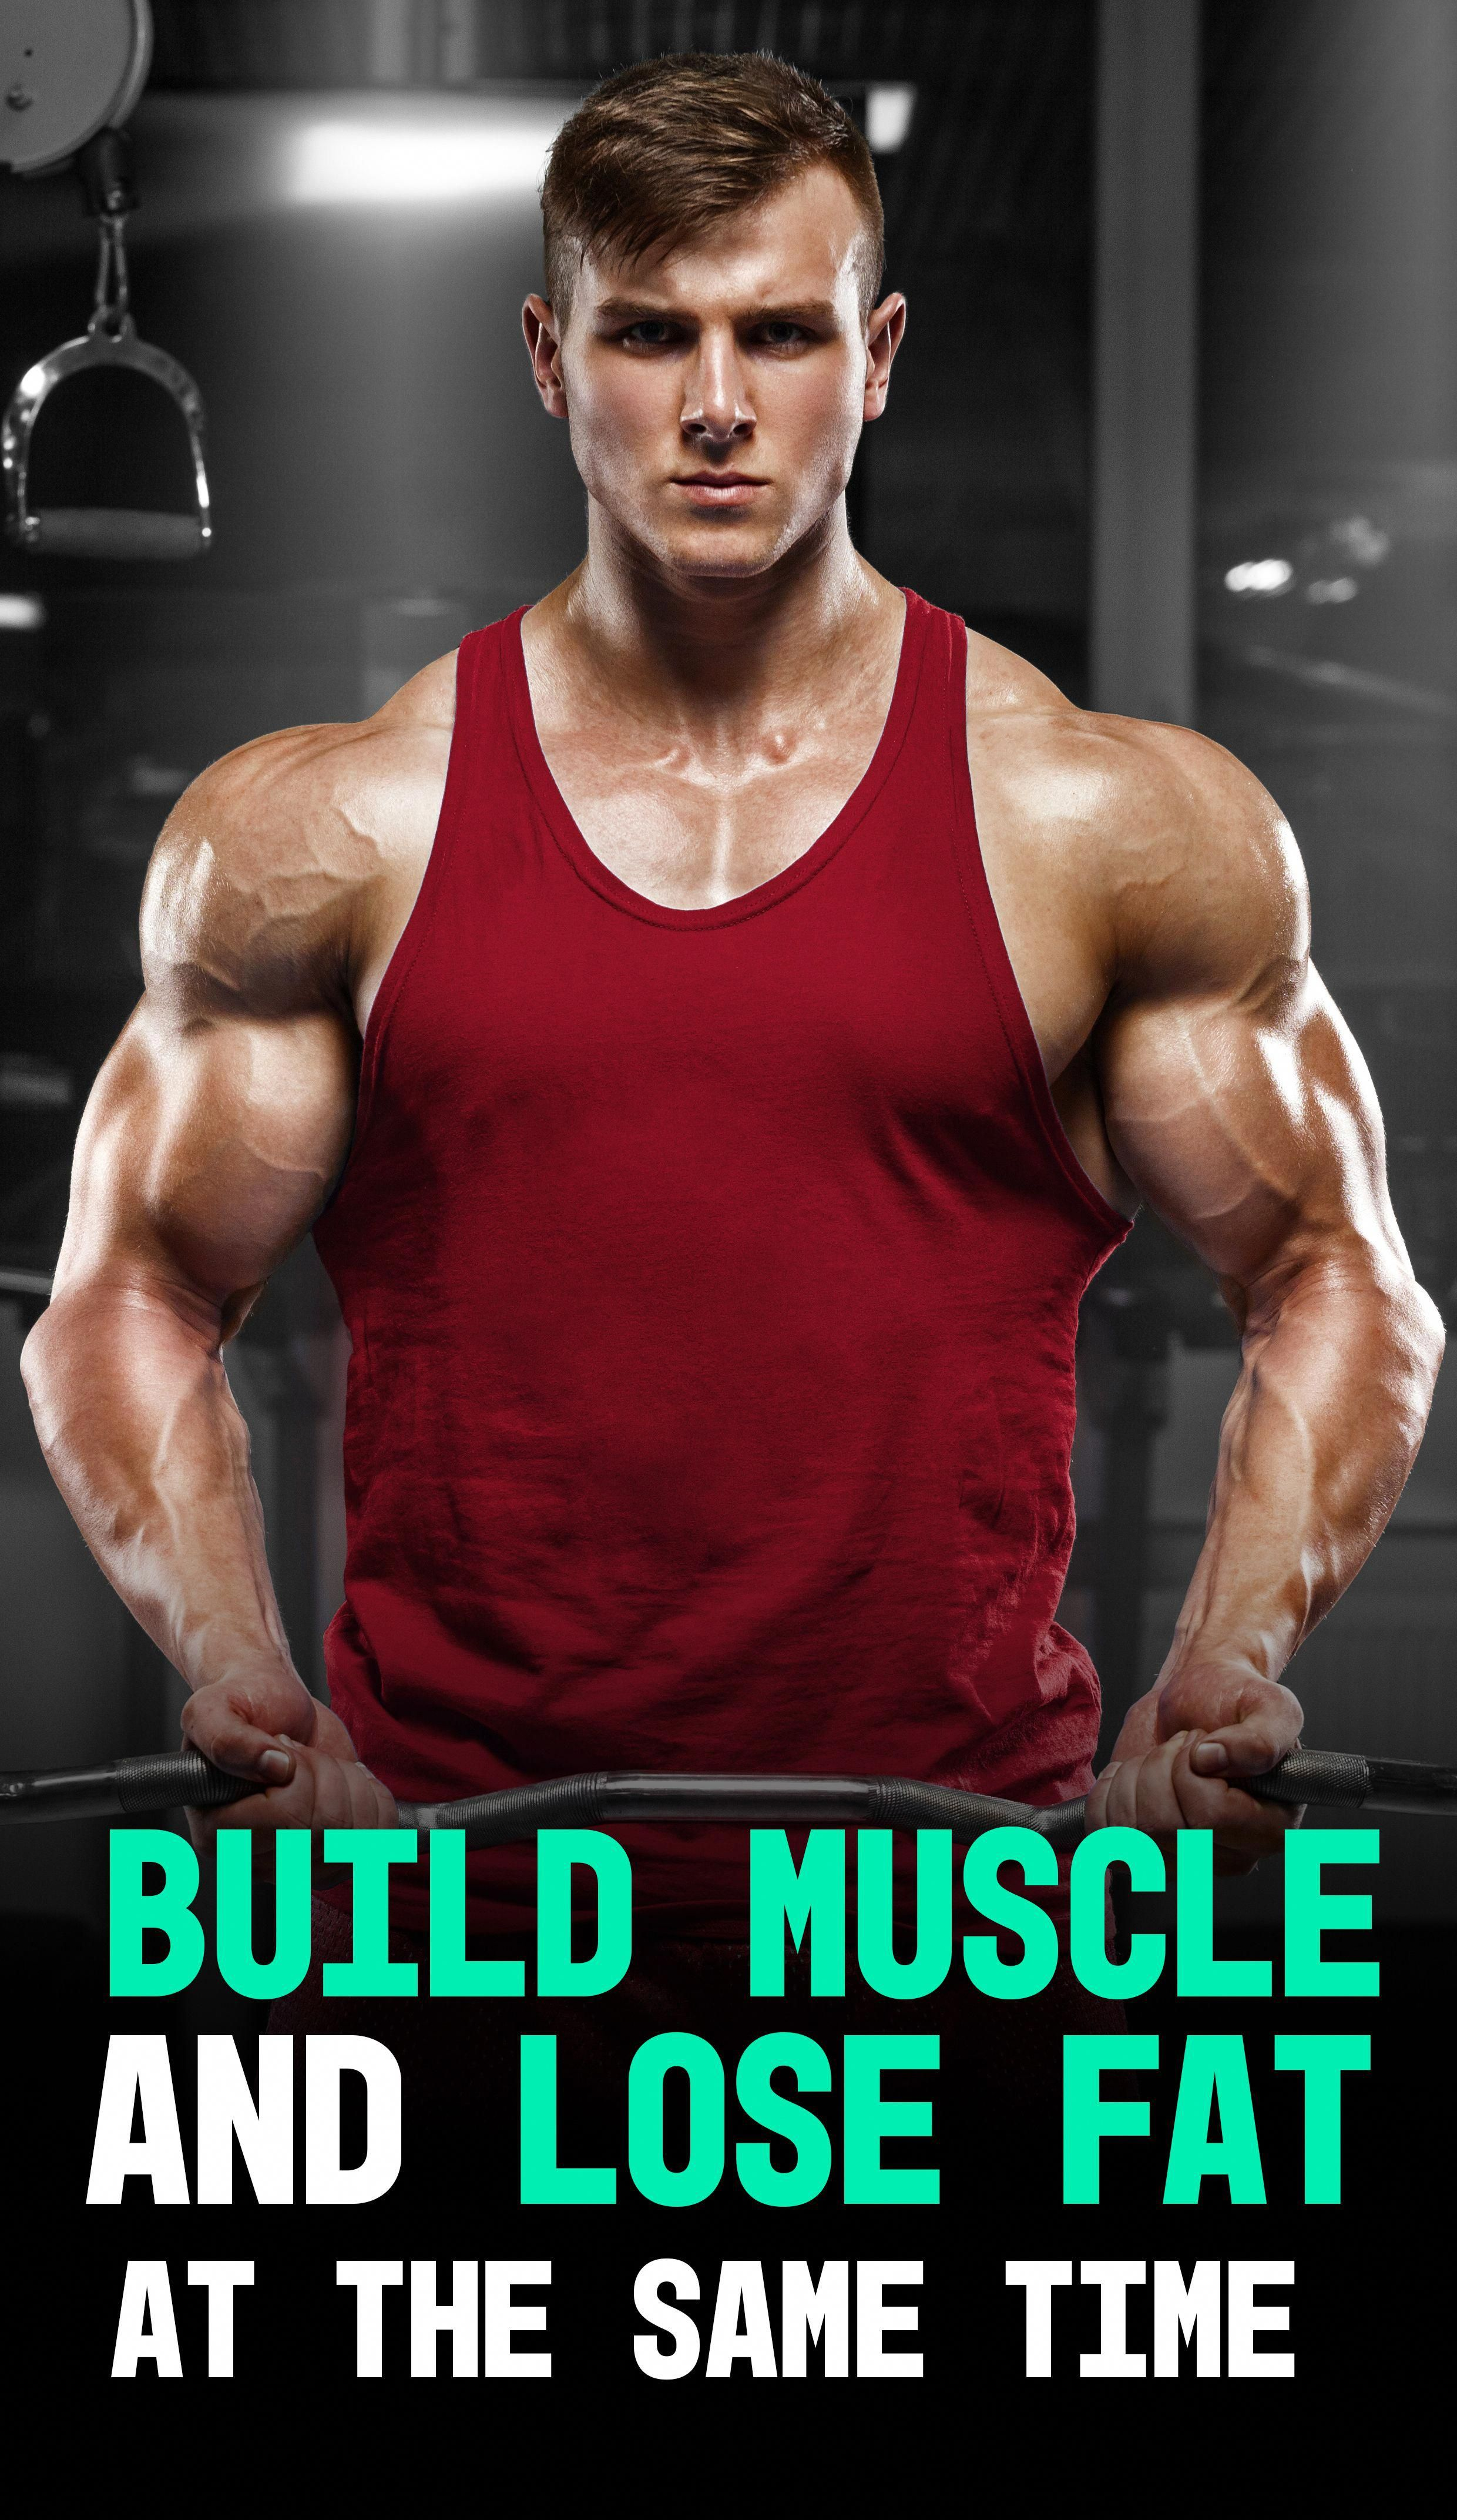 It's not a myth! You can in-fact fat and build muscle at the same time. All it take is a bit of fitn...